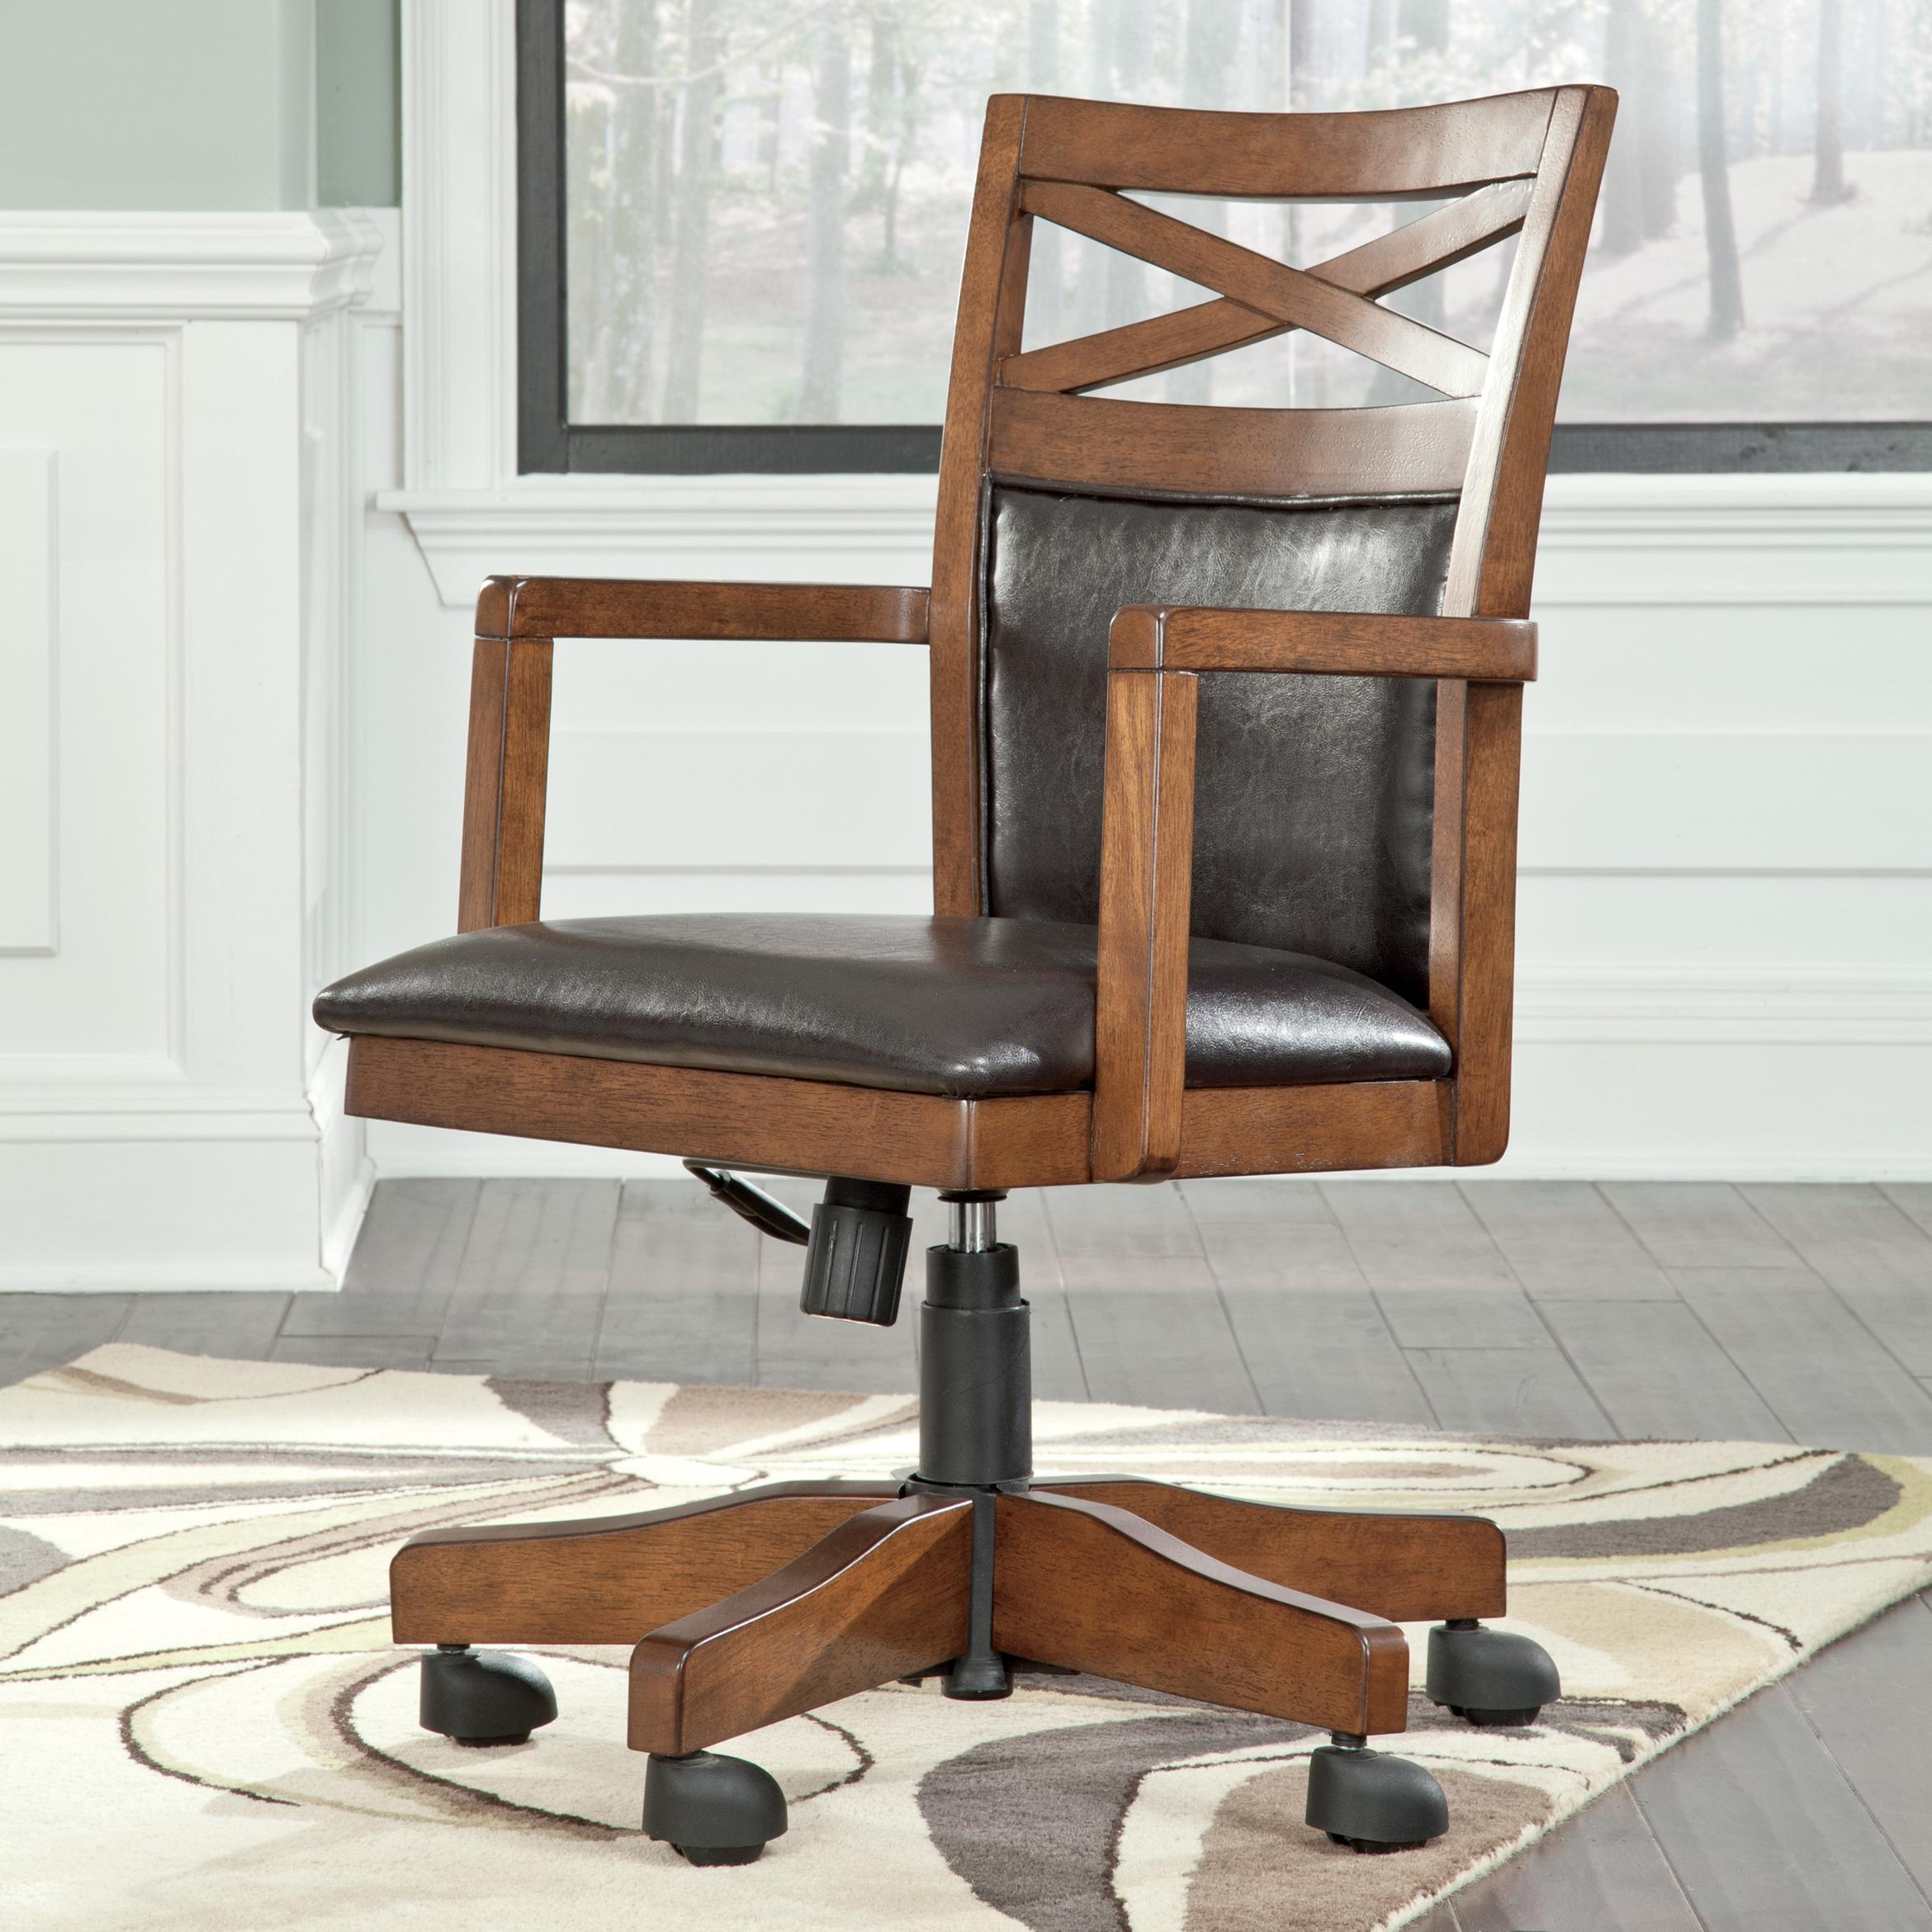 Signature Design by Ashley Burkesville Home Office Desk Chair - Item Number: H565-01A